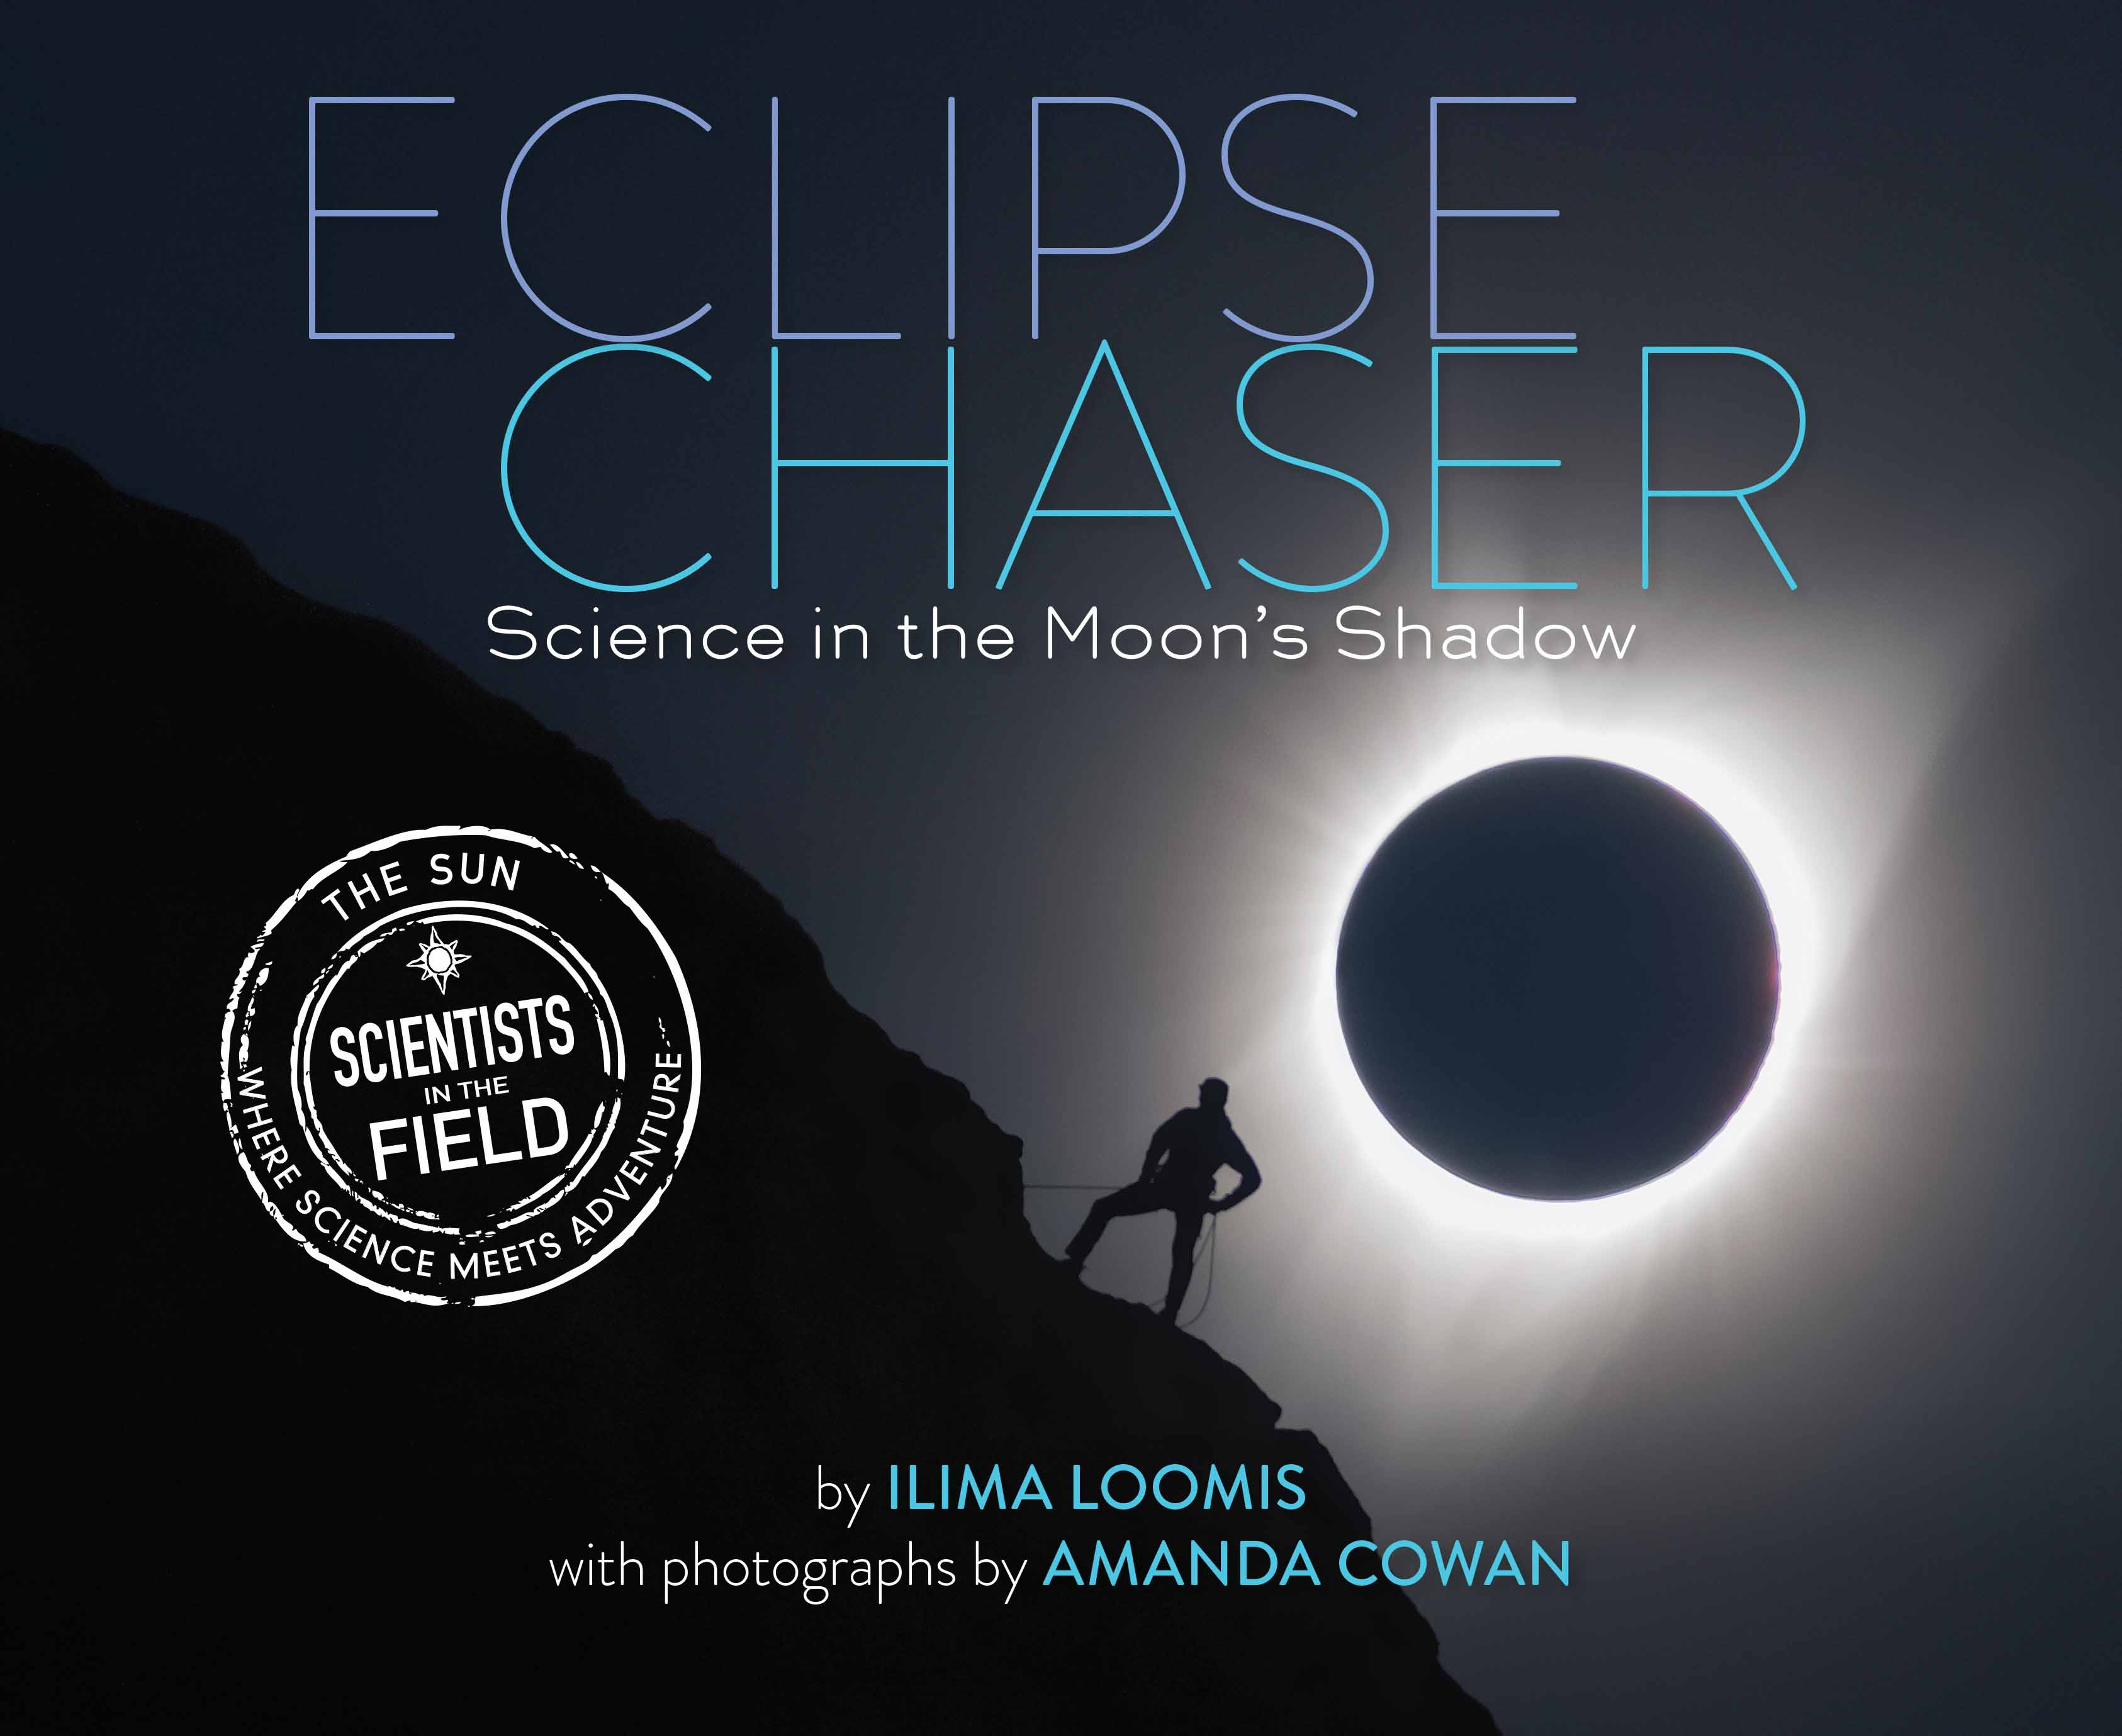 Eclipse Chaser: Science in the Moon's Shadow